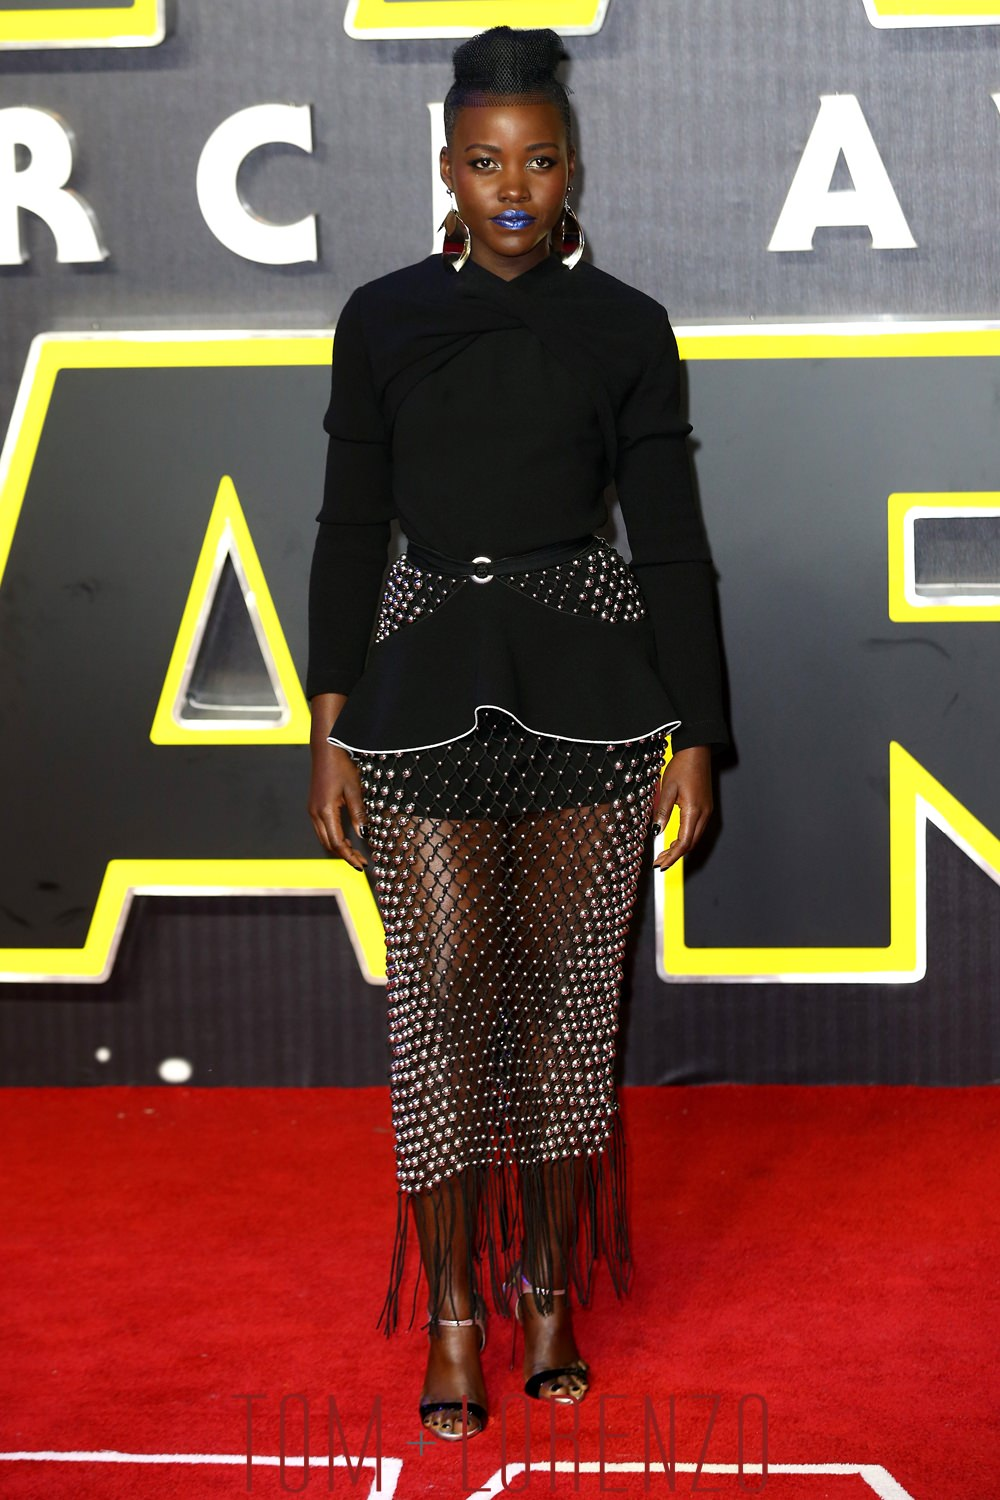 Lupita-Nyongo-Star-Wars-Force-Awakens-Movie-London-European-Premiere-Tom-Lorenzo-Site-1.jpg